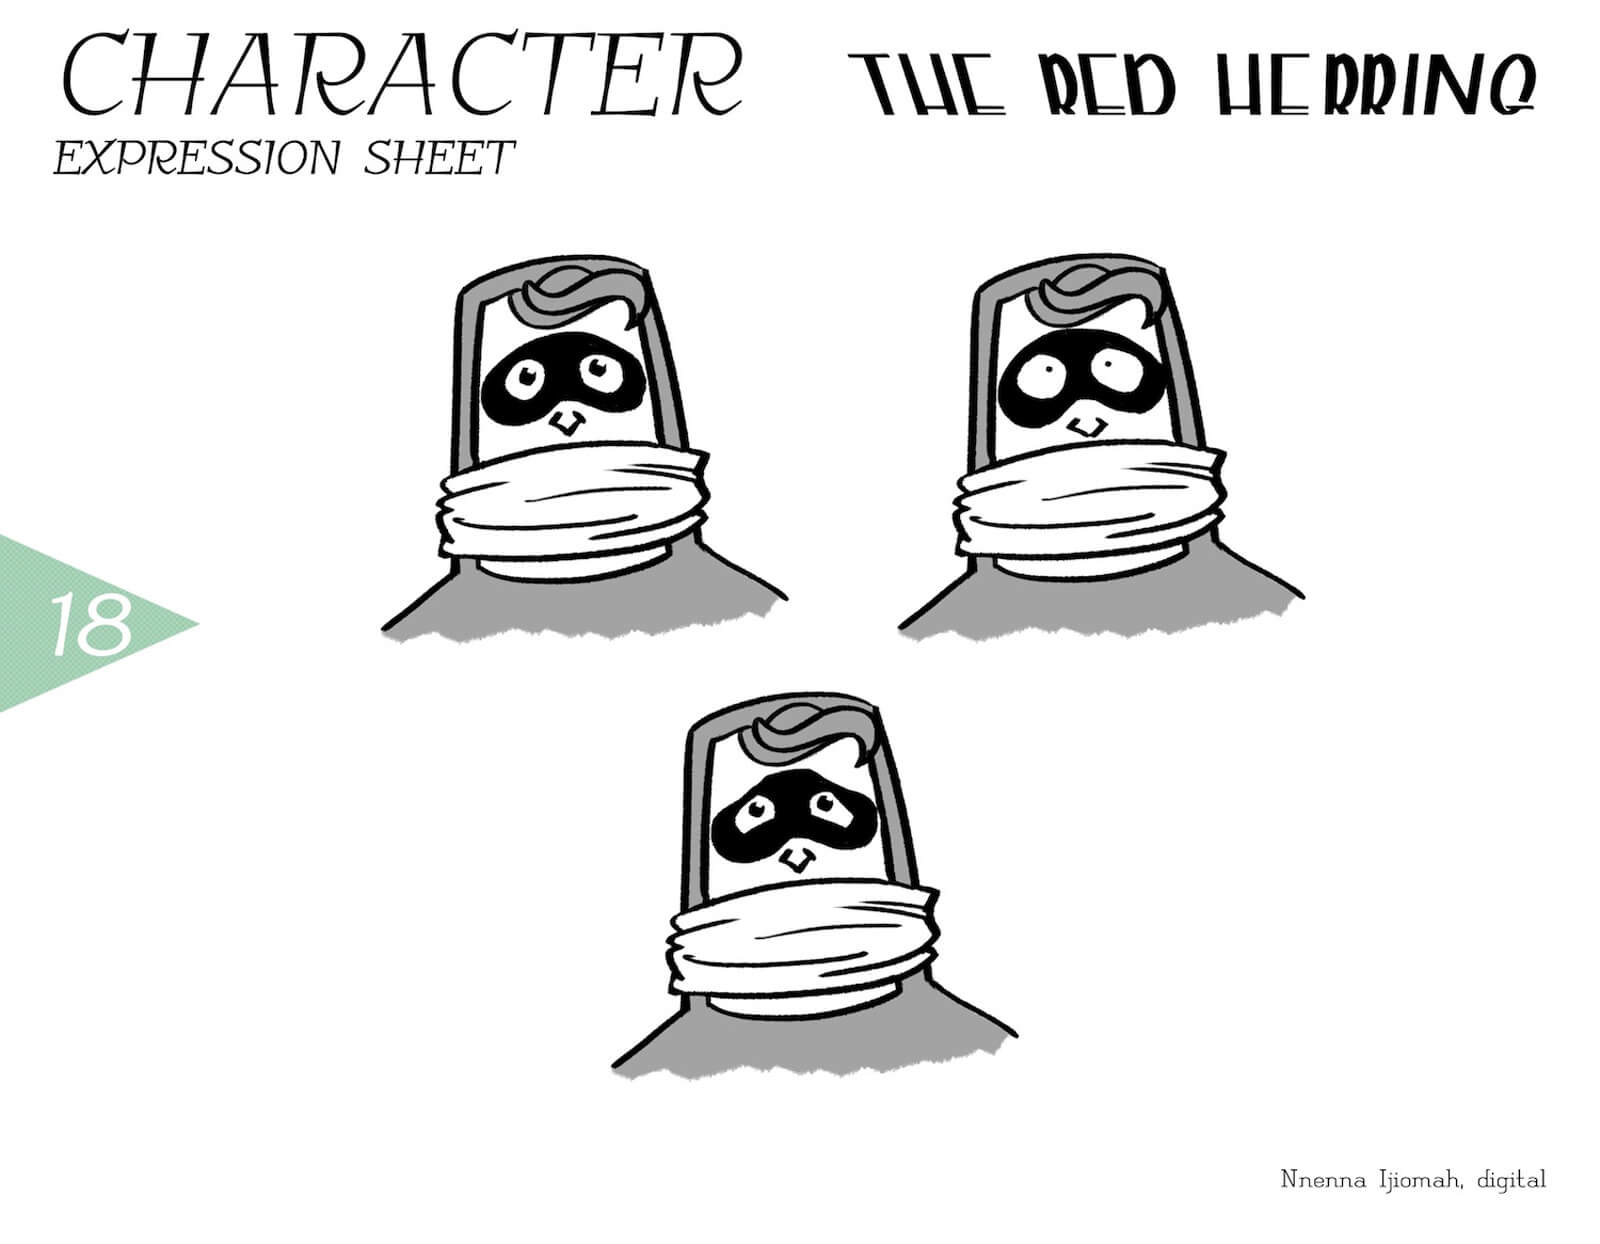 Expression sheet for The Red Herring, depicting black-and-white sketches of surprise and fear